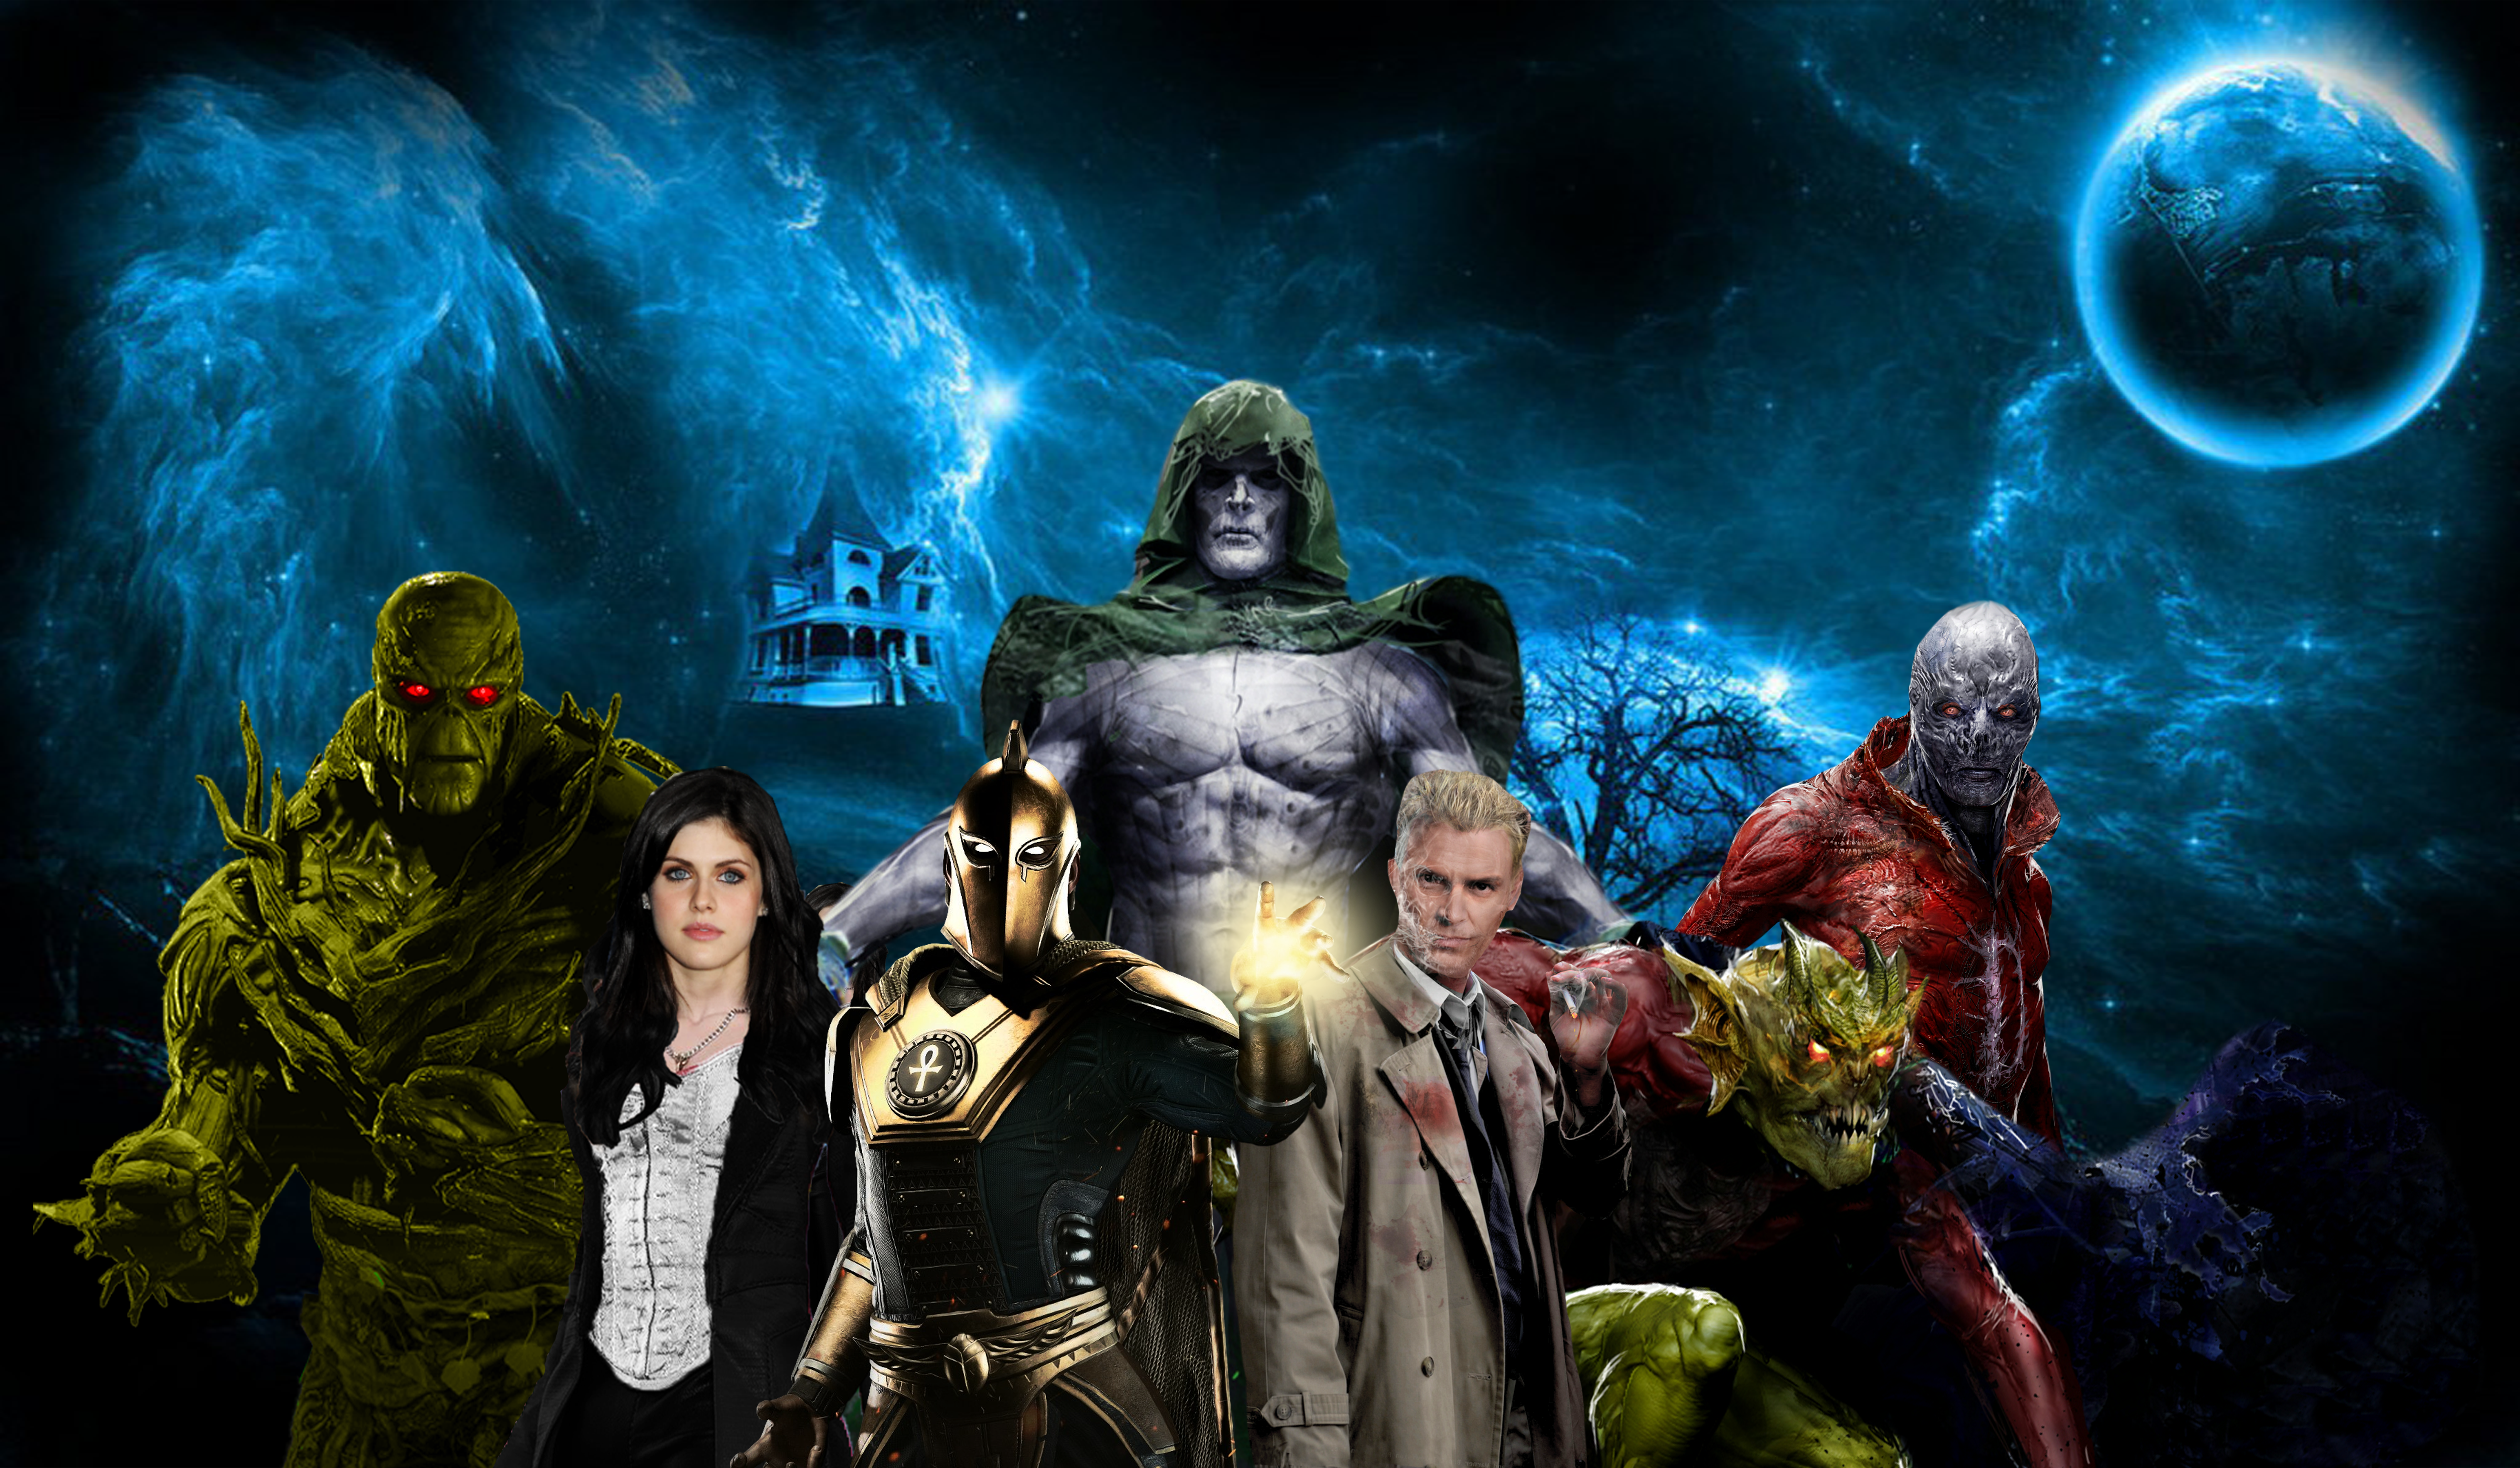 Cool Wallpaper Movie Justice League - justice_league_dark___wallpaper_by_daviddv1202-db6icab  Pic_524577.png